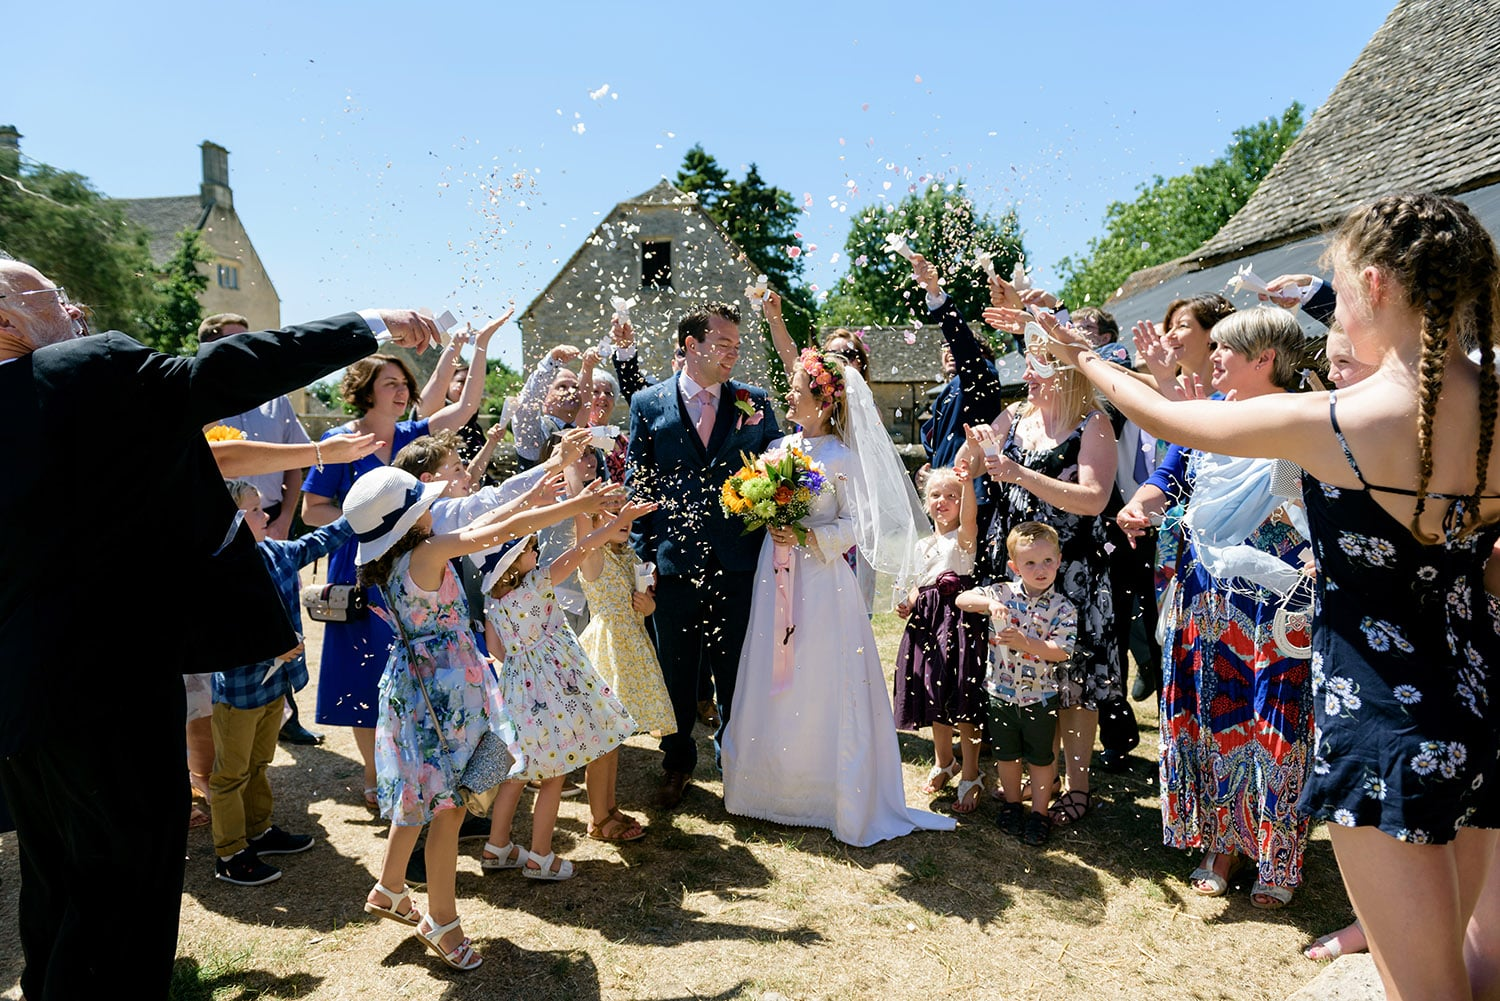 Cogges Manor Farm wedding photographer based in Oxfordshire